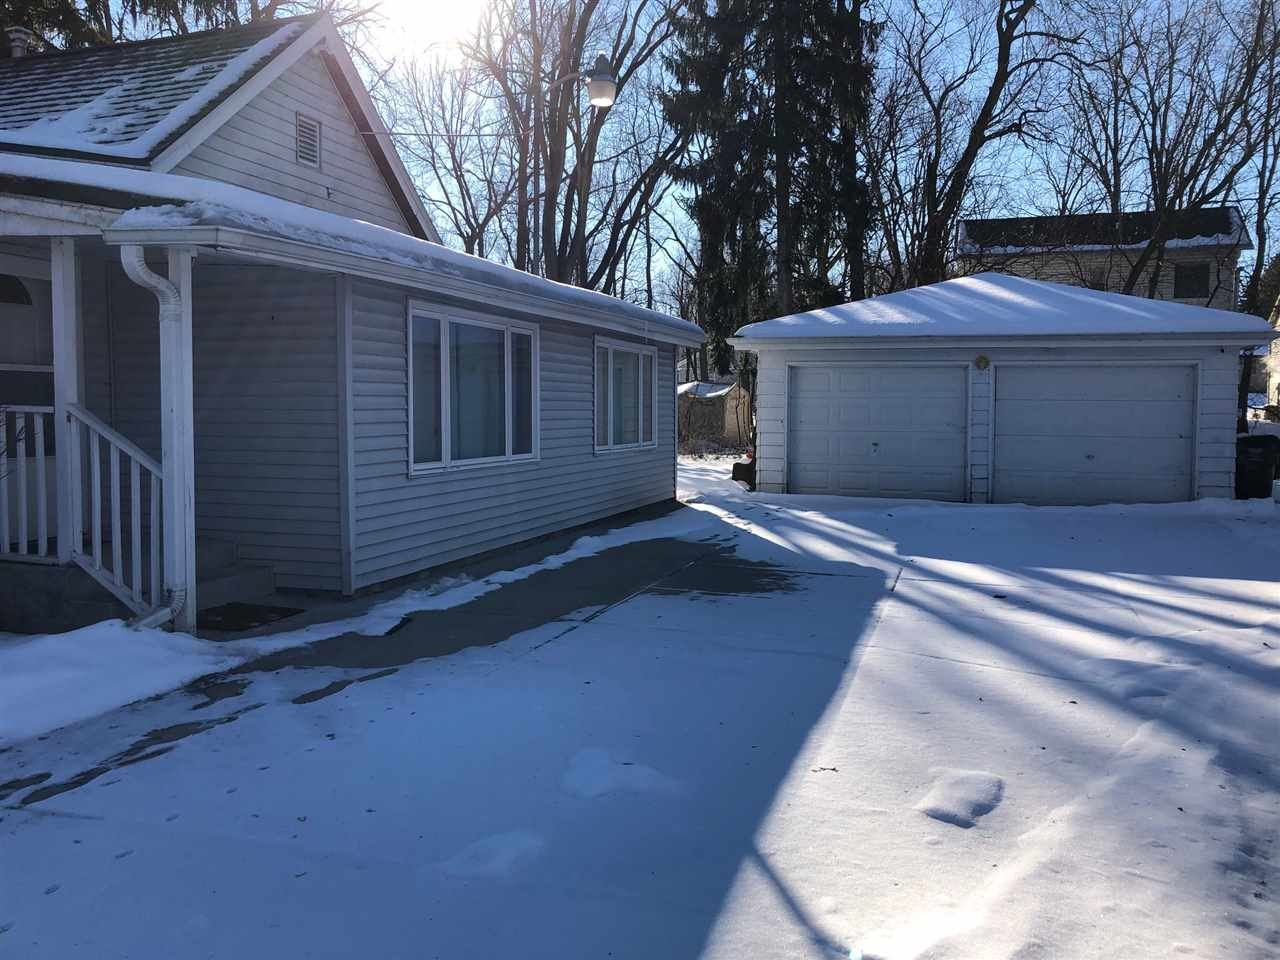 f_1900994_02 Properties For Sale in Edgerton